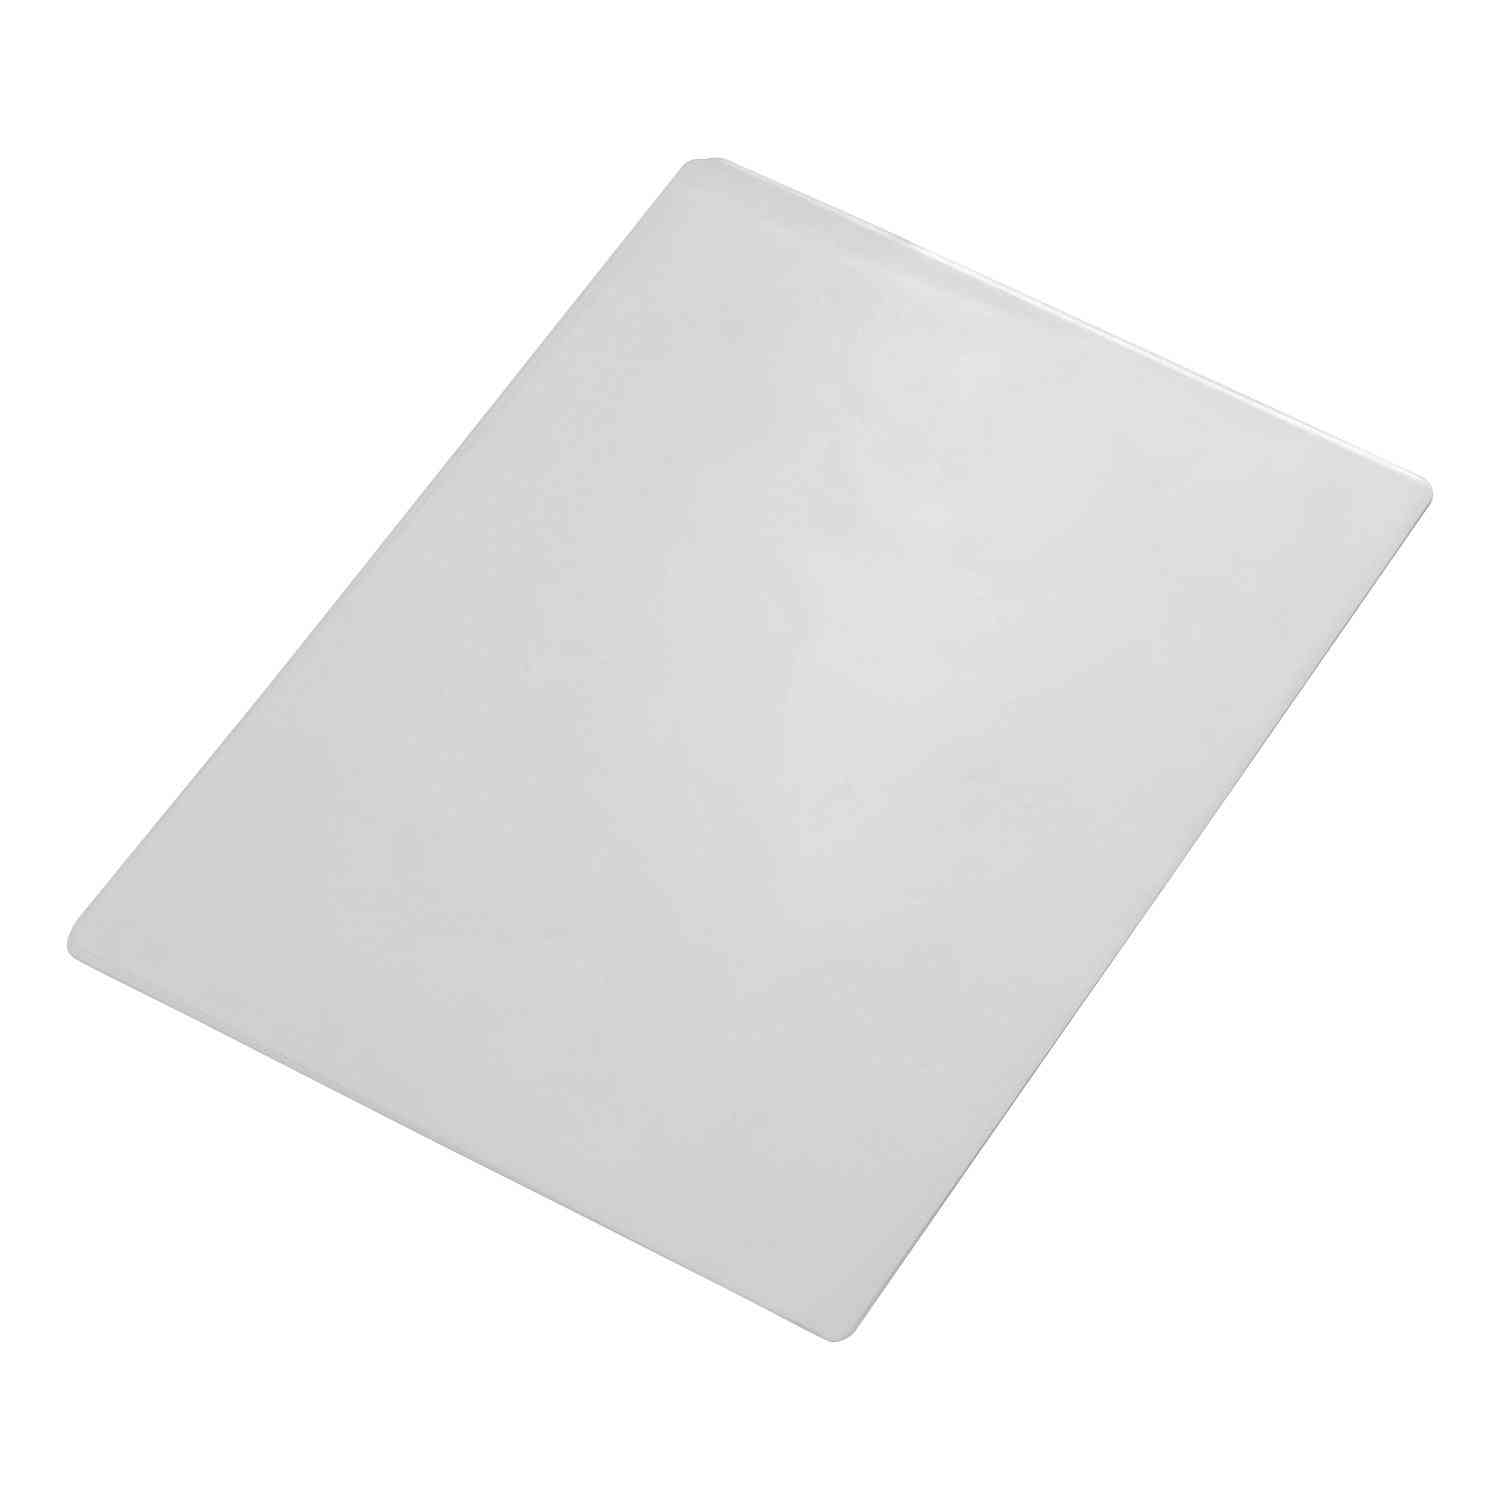 120 Sheets 2r 3r 4r 5r 6r A4 Size  80mic Thermal Laminating Film Pouches Pet Clear Sheet